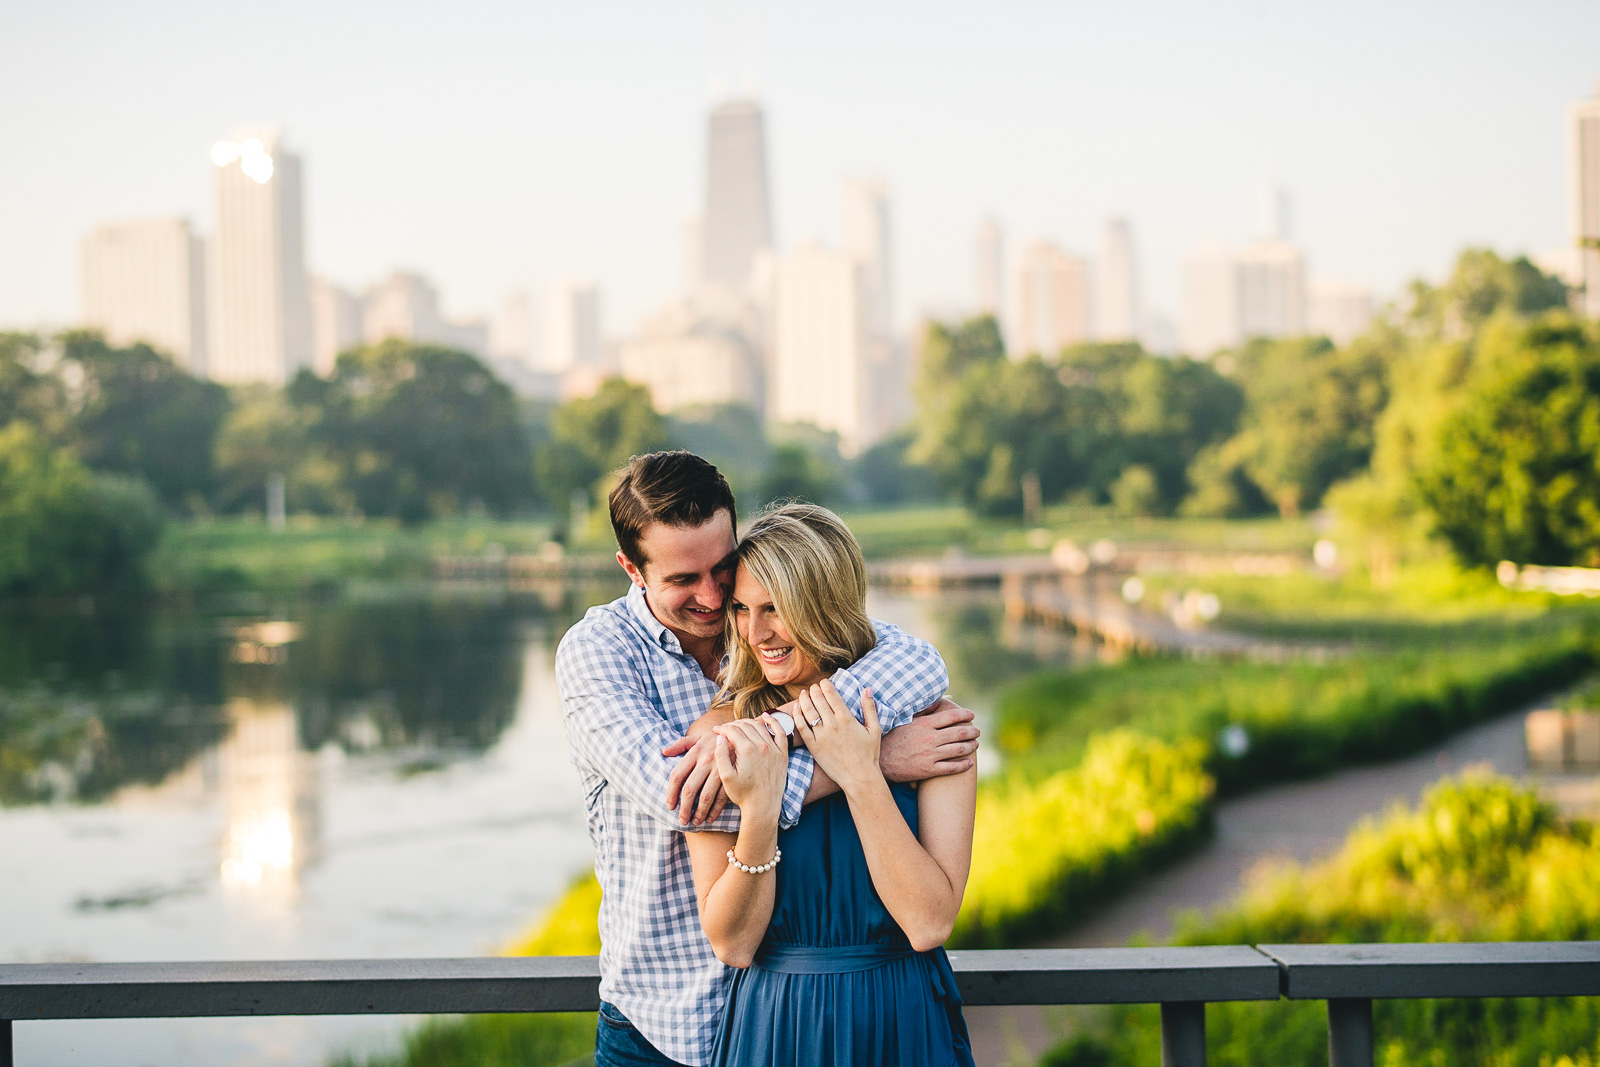 13 chicago photography inspo engagement - Chicago Engagement Photos // Lauren + Ben